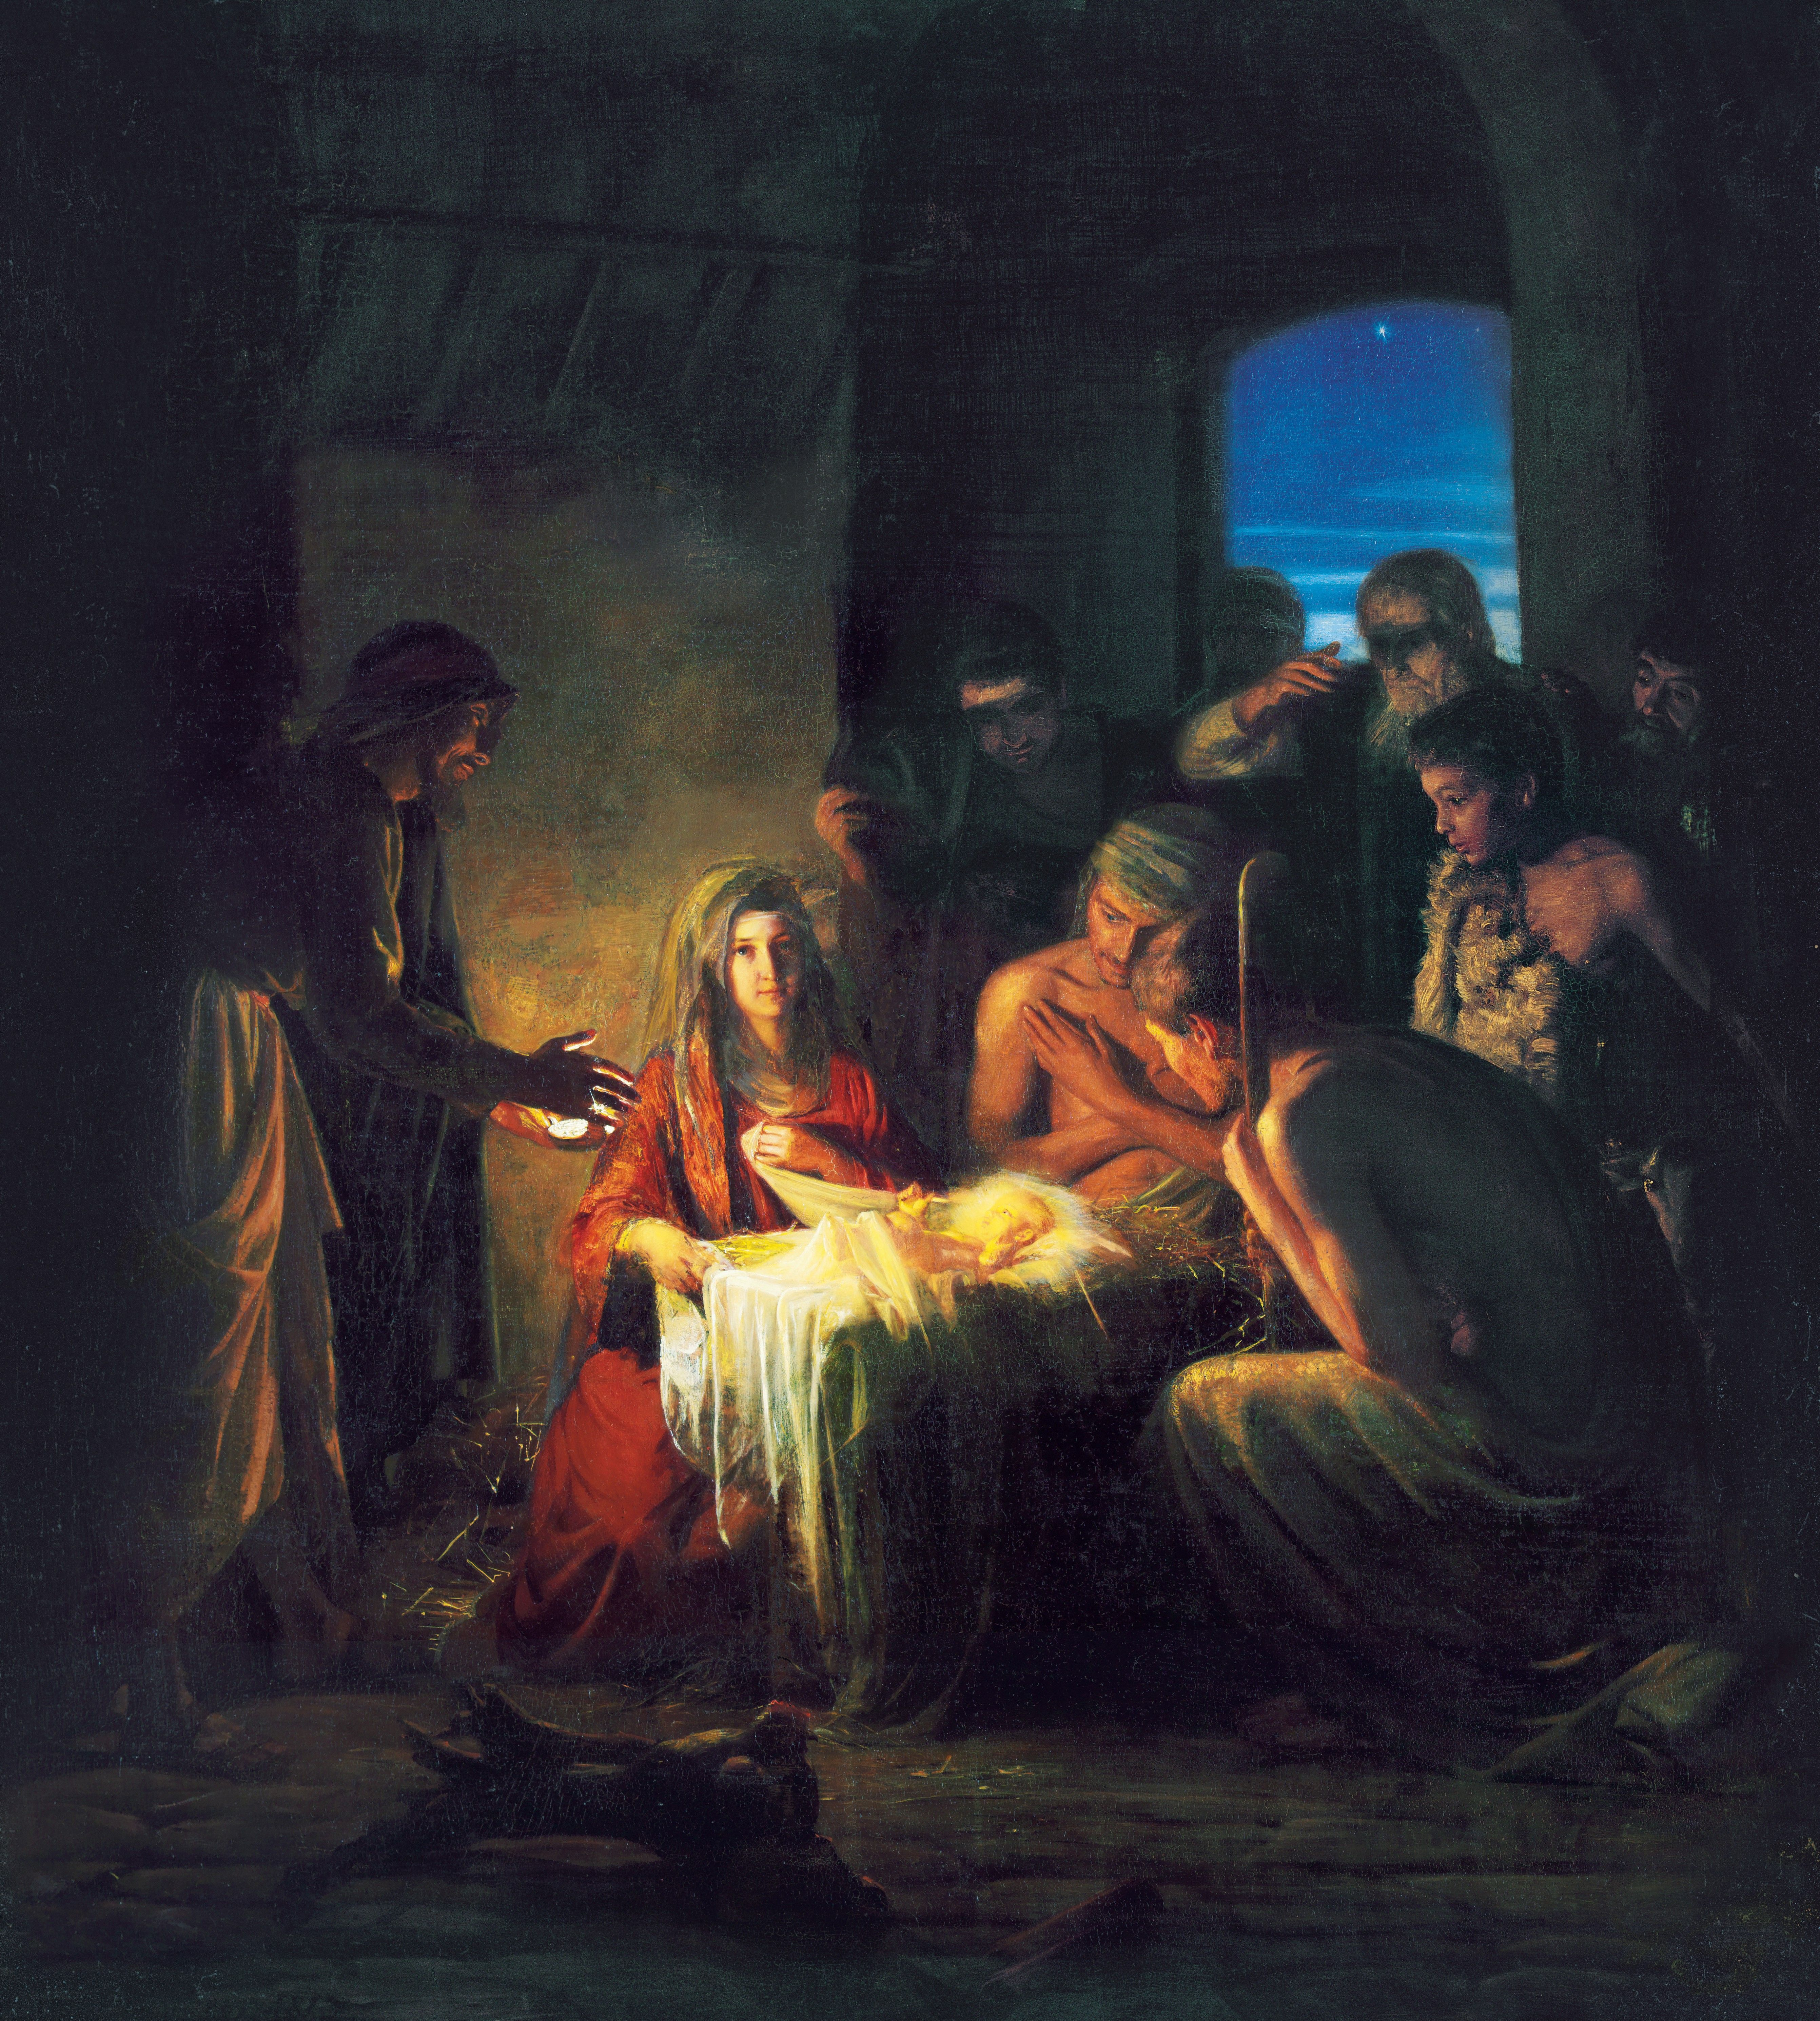 The Birth of Jesus, by Carl Heinrich Bloch (62116); GAK 200; GAB 30; Primary manual 1-75; Primary manual 2-41; Primary manual 4-10; Primary manual 6-50; Primary manual 7-03; Isaiah 7:14; Luke 2:1–16; 1 Nephi 11:13–21; Alma 7:10 This image is to be used for Church purposes only.